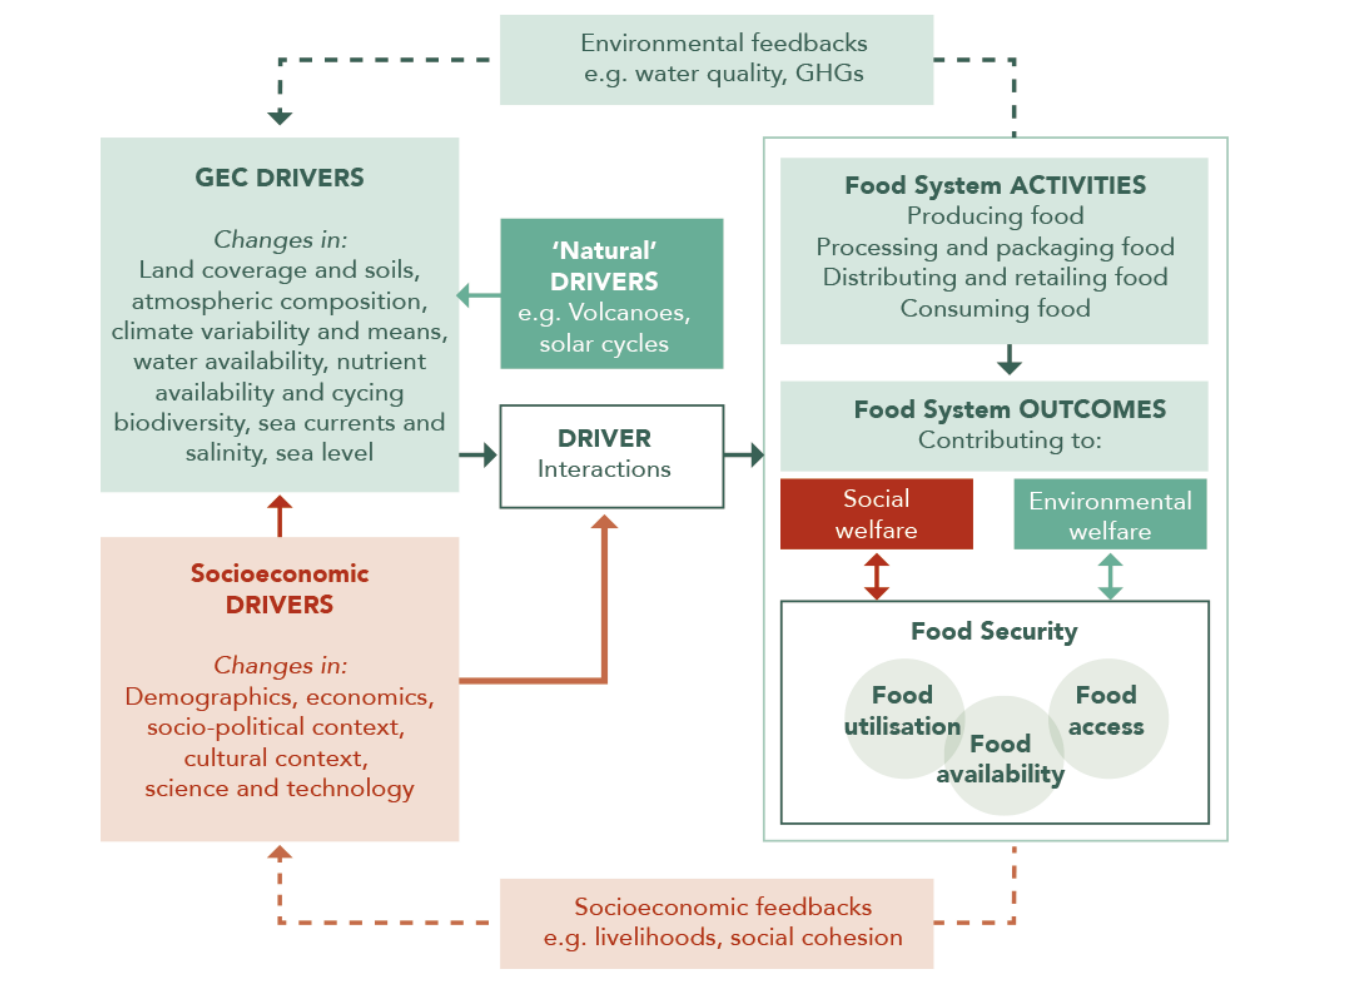 Figure 3: A food system diagram showing drivers of change and relationship with food system outcomes.